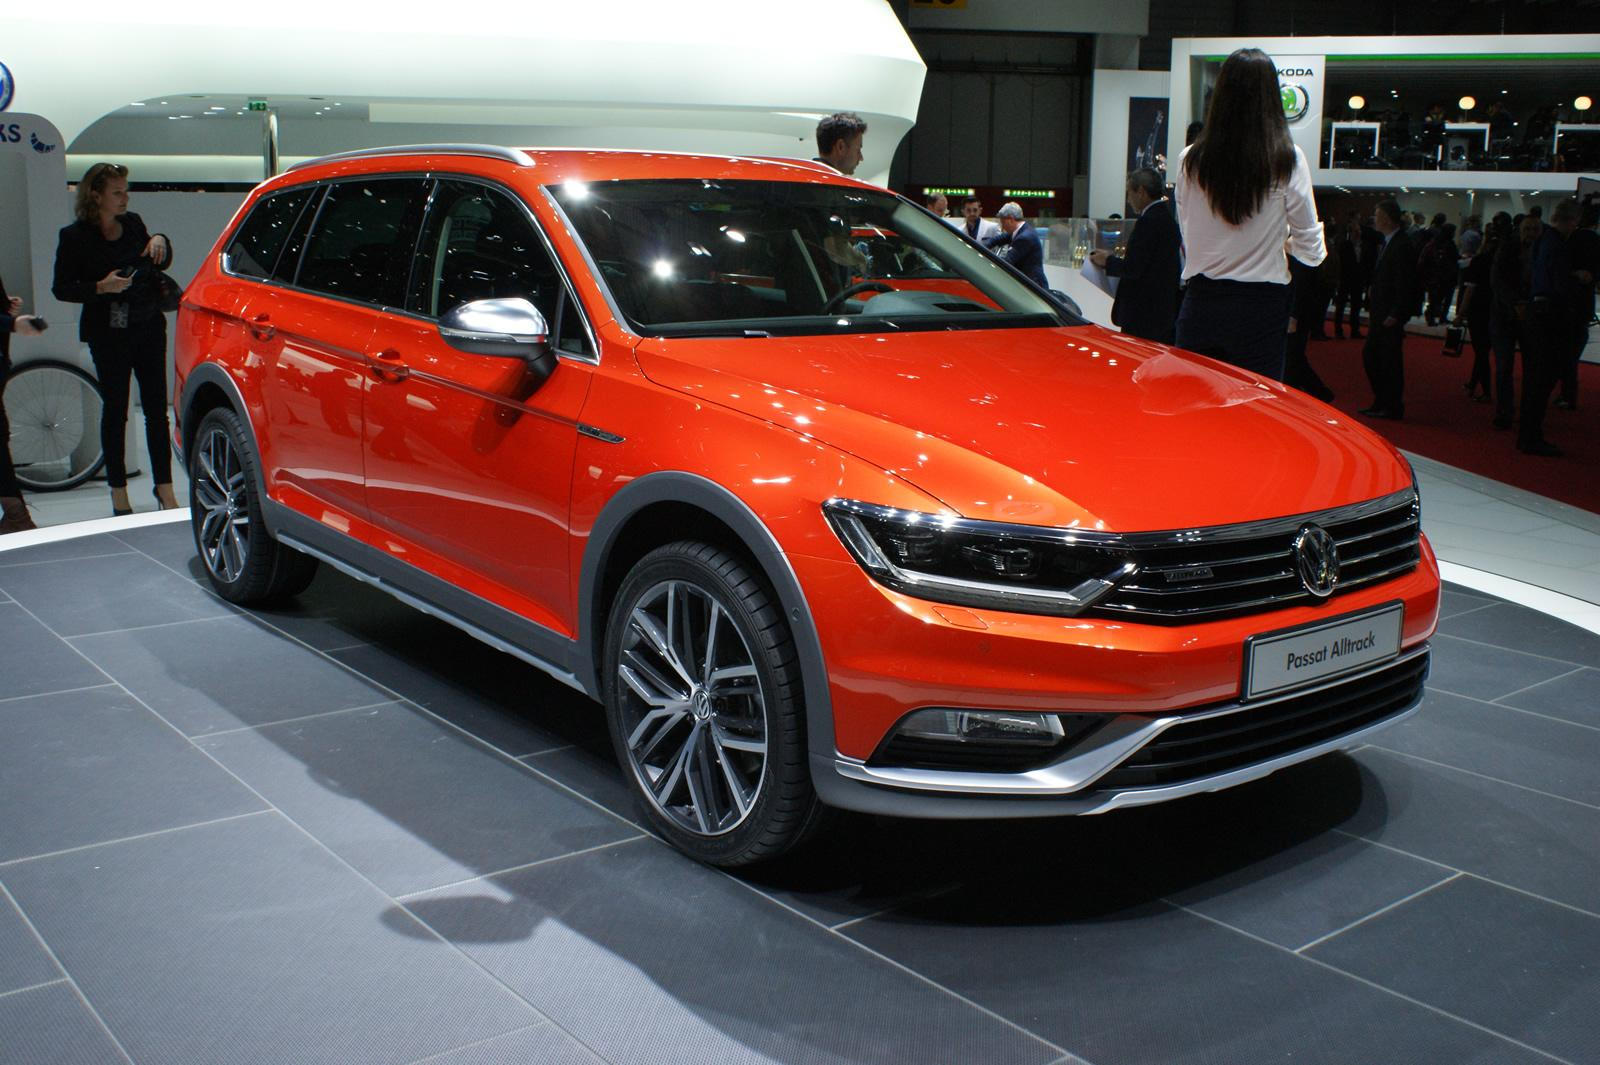 volkswagen passat alltrack salone di ginevra 2015 foto 3 di 5. Black Bedroom Furniture Sets. Home Design Ideas